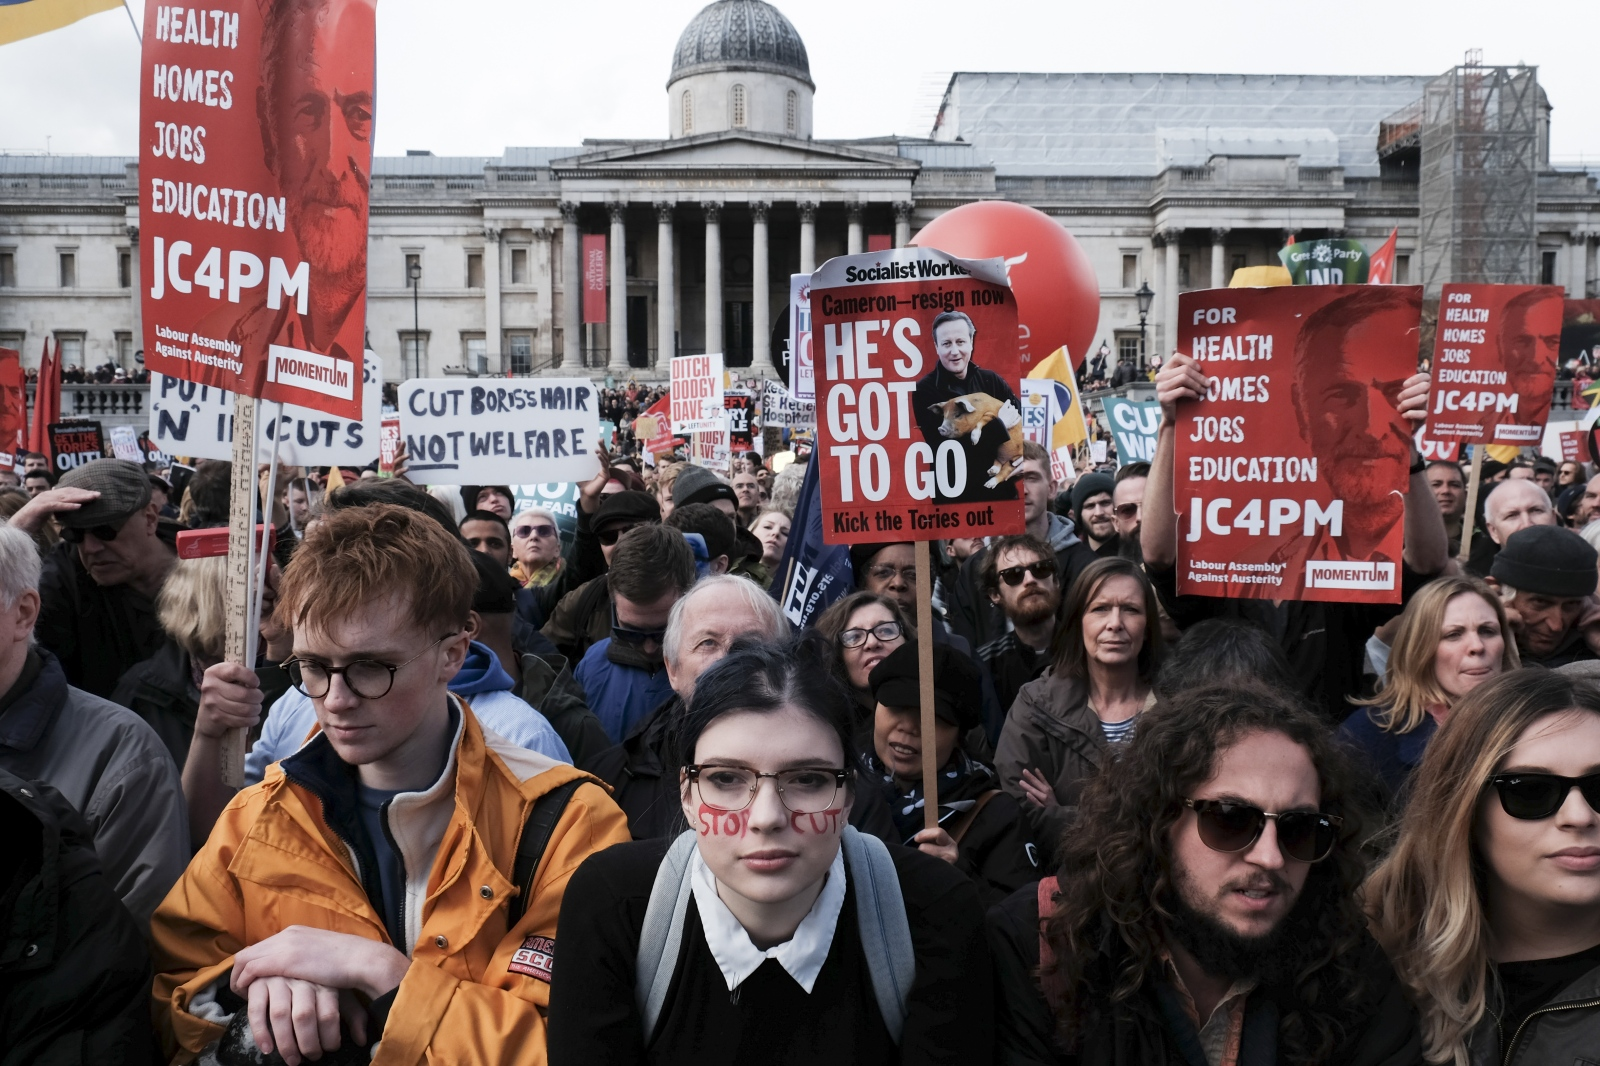 Anti-austerity march. 16th of April